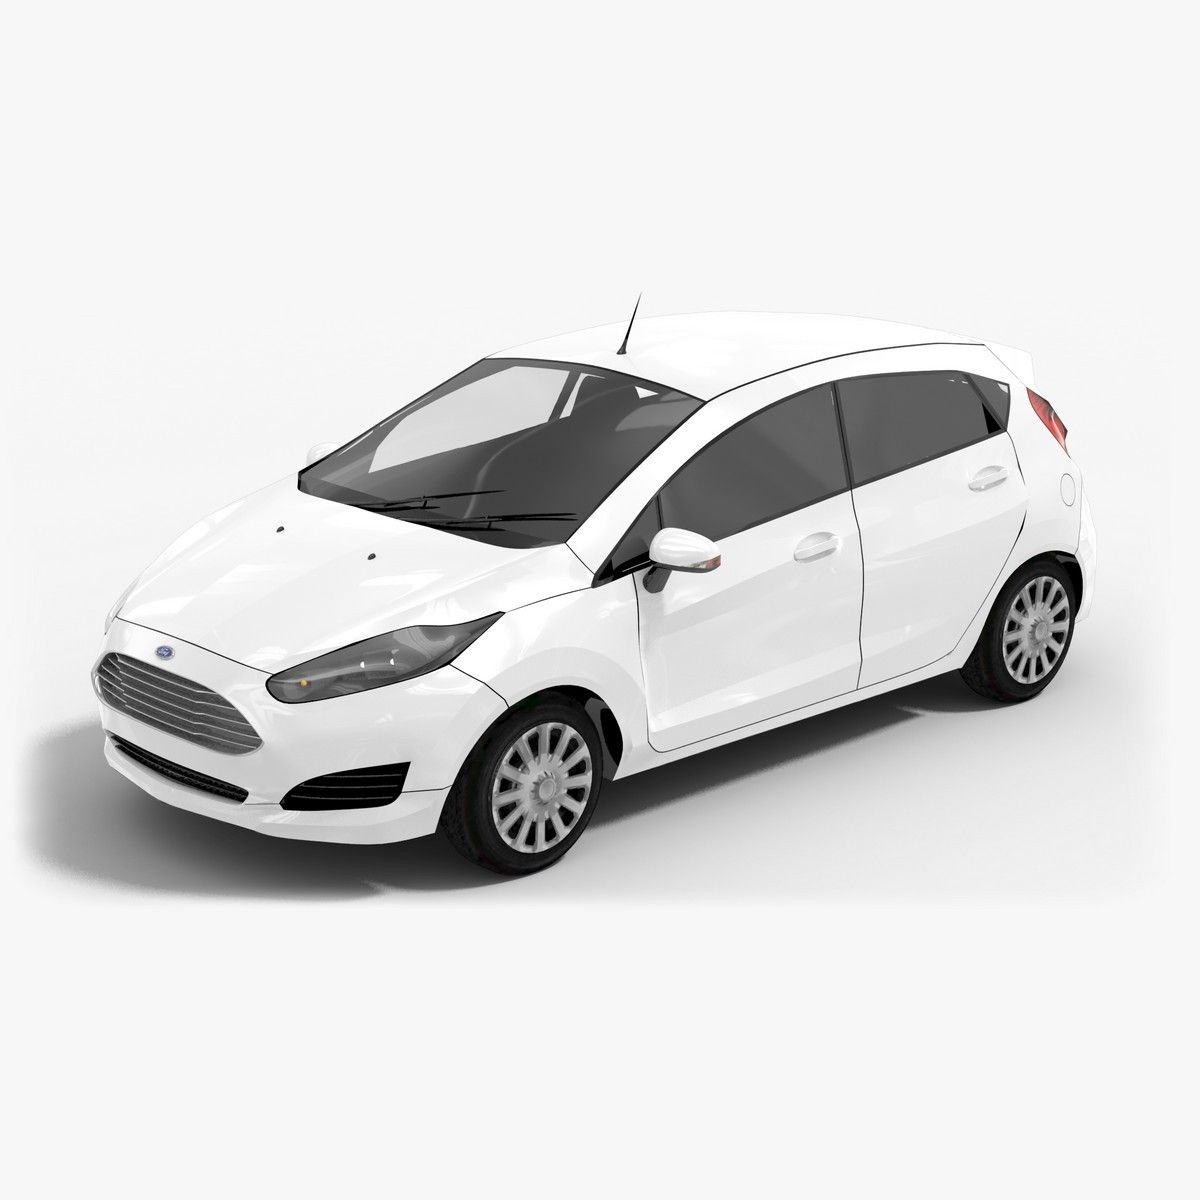 A Small Hatchback With Huge Abilities Is Ford Fiesta 2013 Take A Look At Its Lowpoly 3d Model Opticaldreamsoft Car 3d Model Sports Cars Model